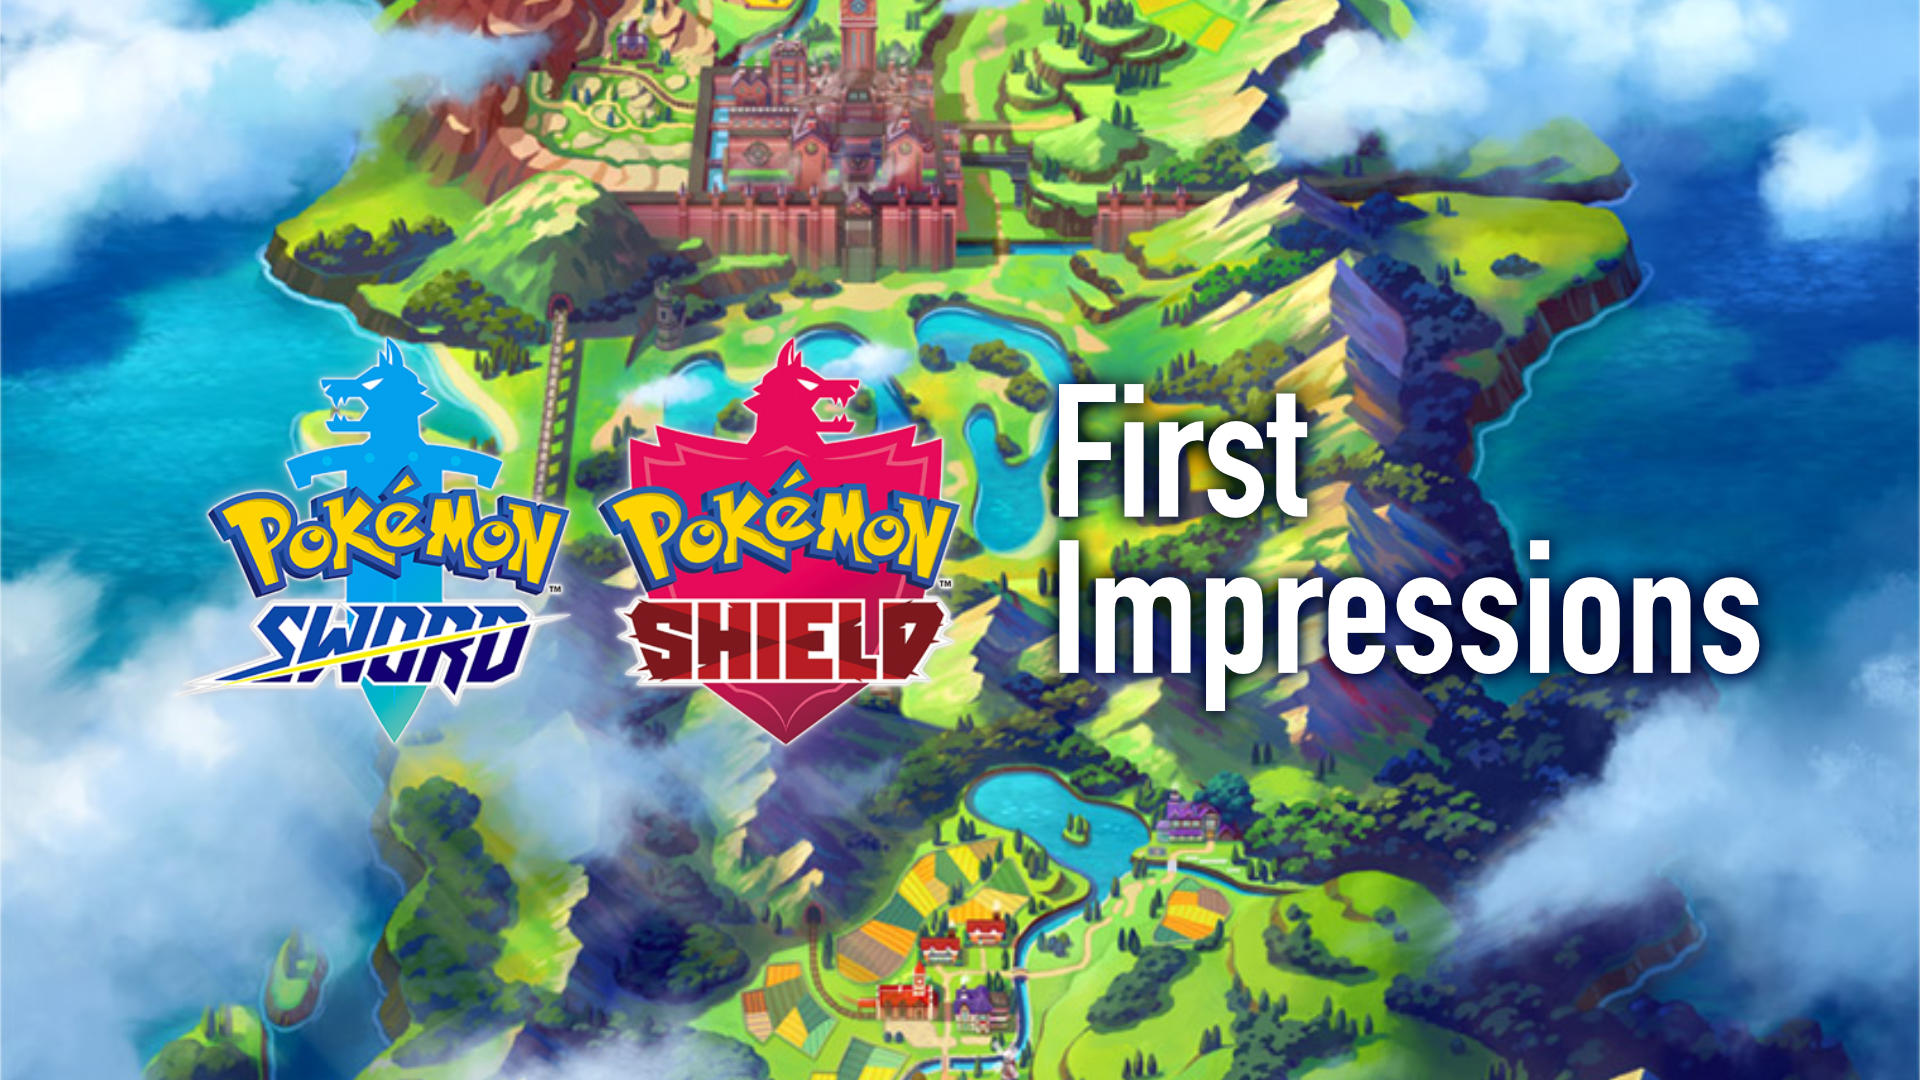 Pokemon Sword and Shield First Impressions